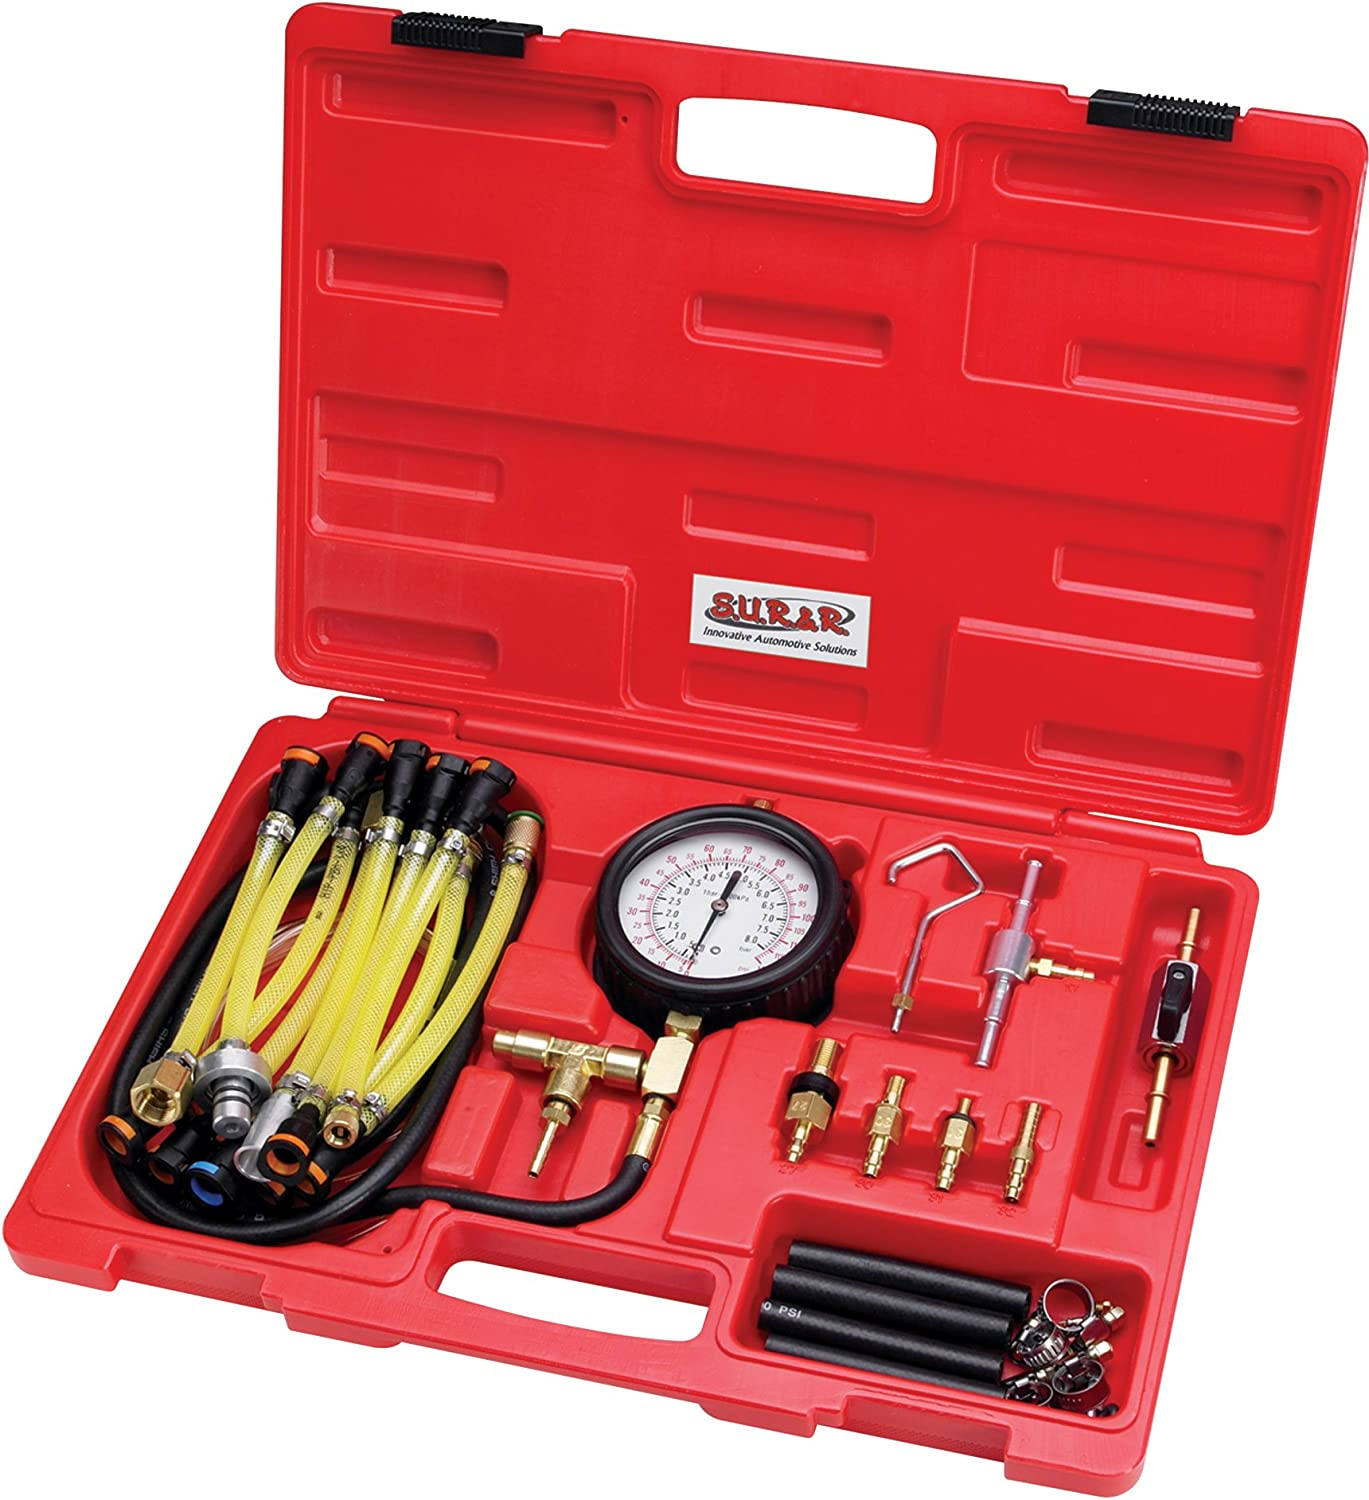 30 Piece /& R FPT22 Deluxe Fuel Injection Pressure Tester Kit S.U.R